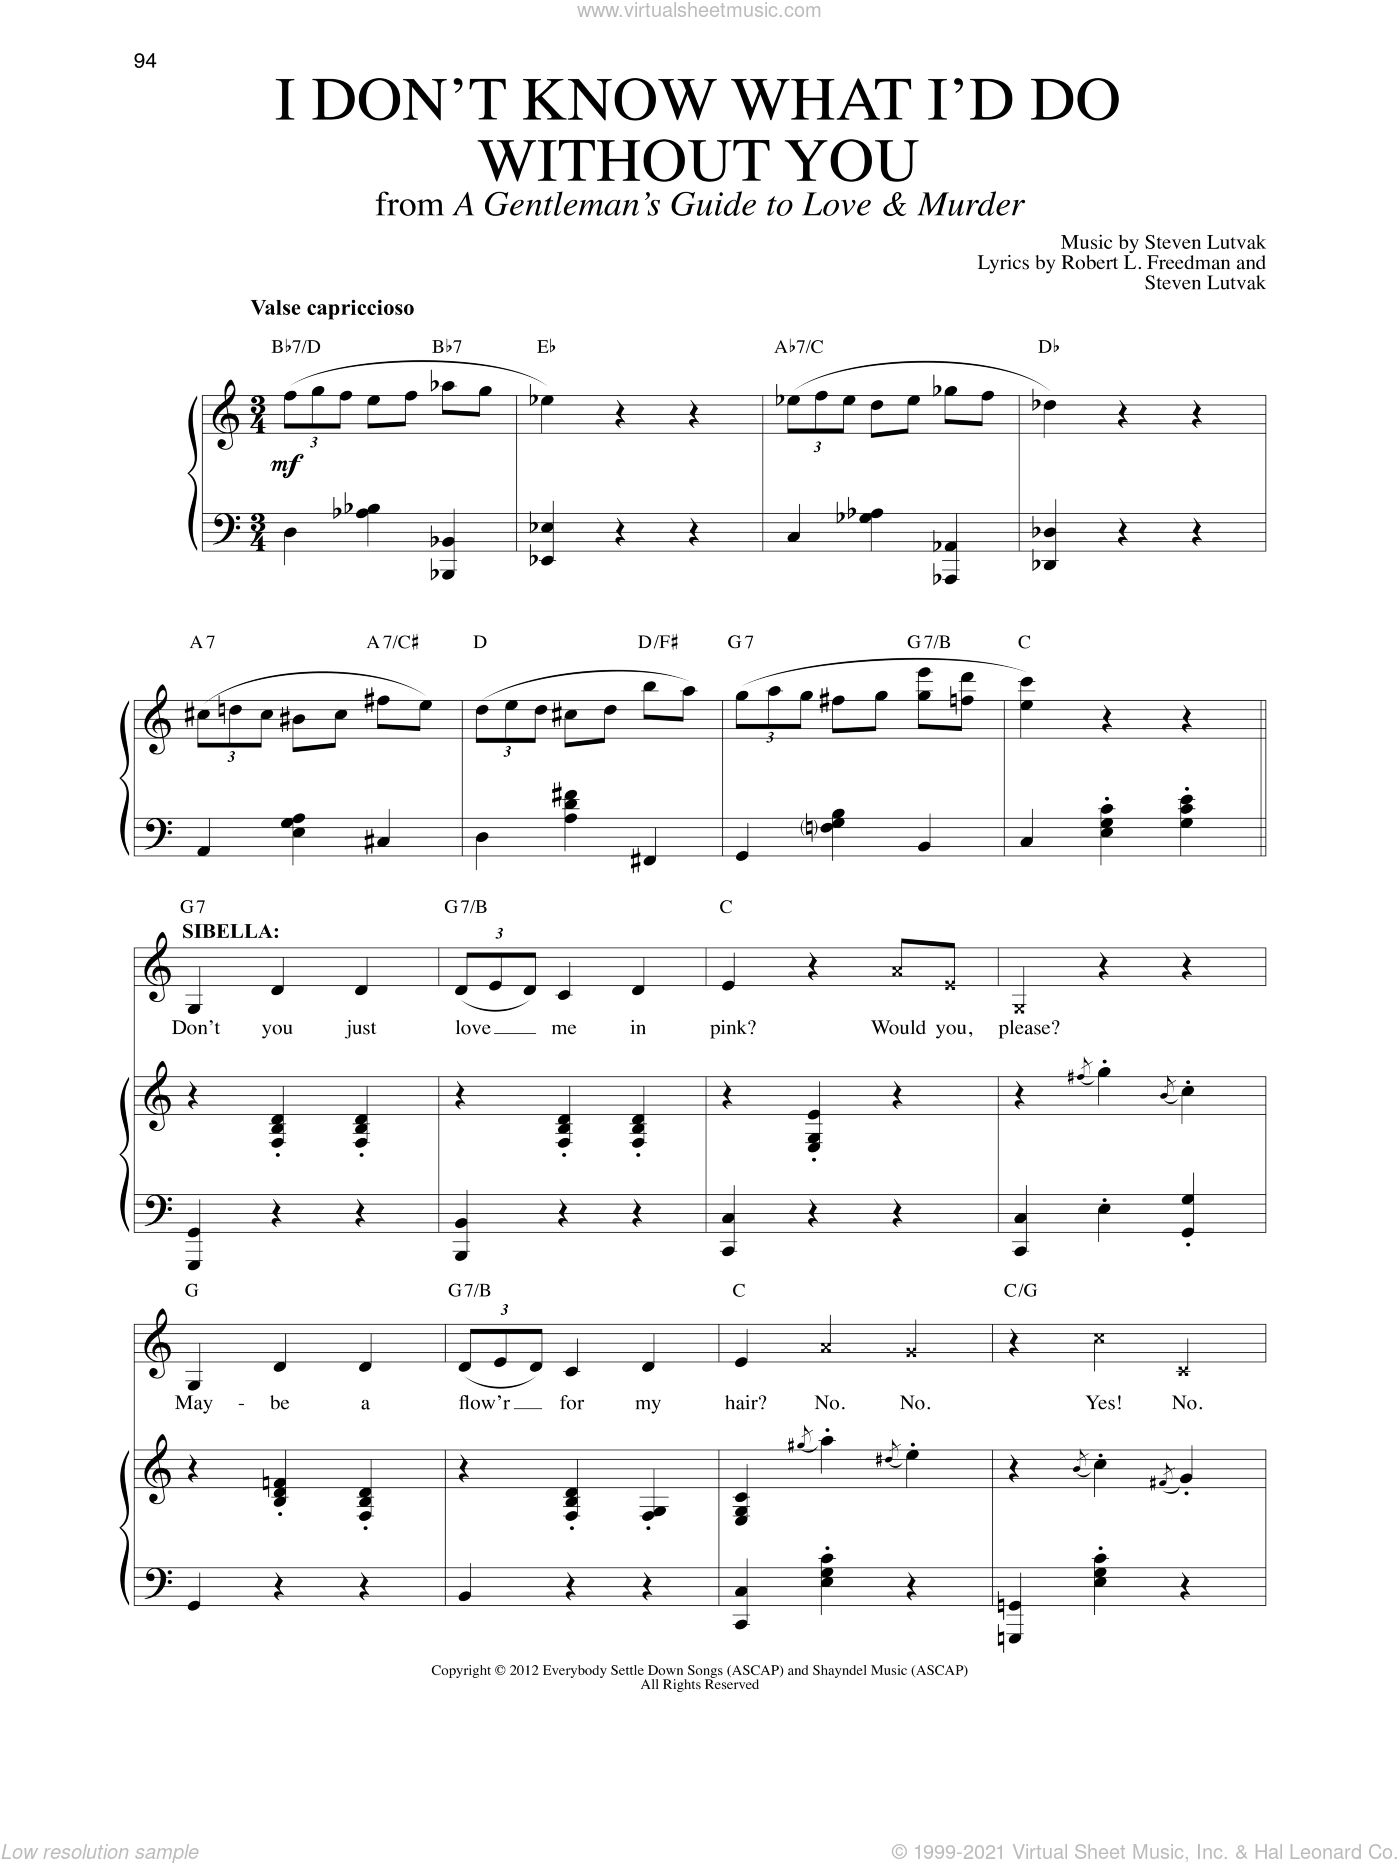 I Don't Know What I'd Do Without You sheet music for voice and piano by Steven Lutvak and Robert L. Freedman, intermediate skill level